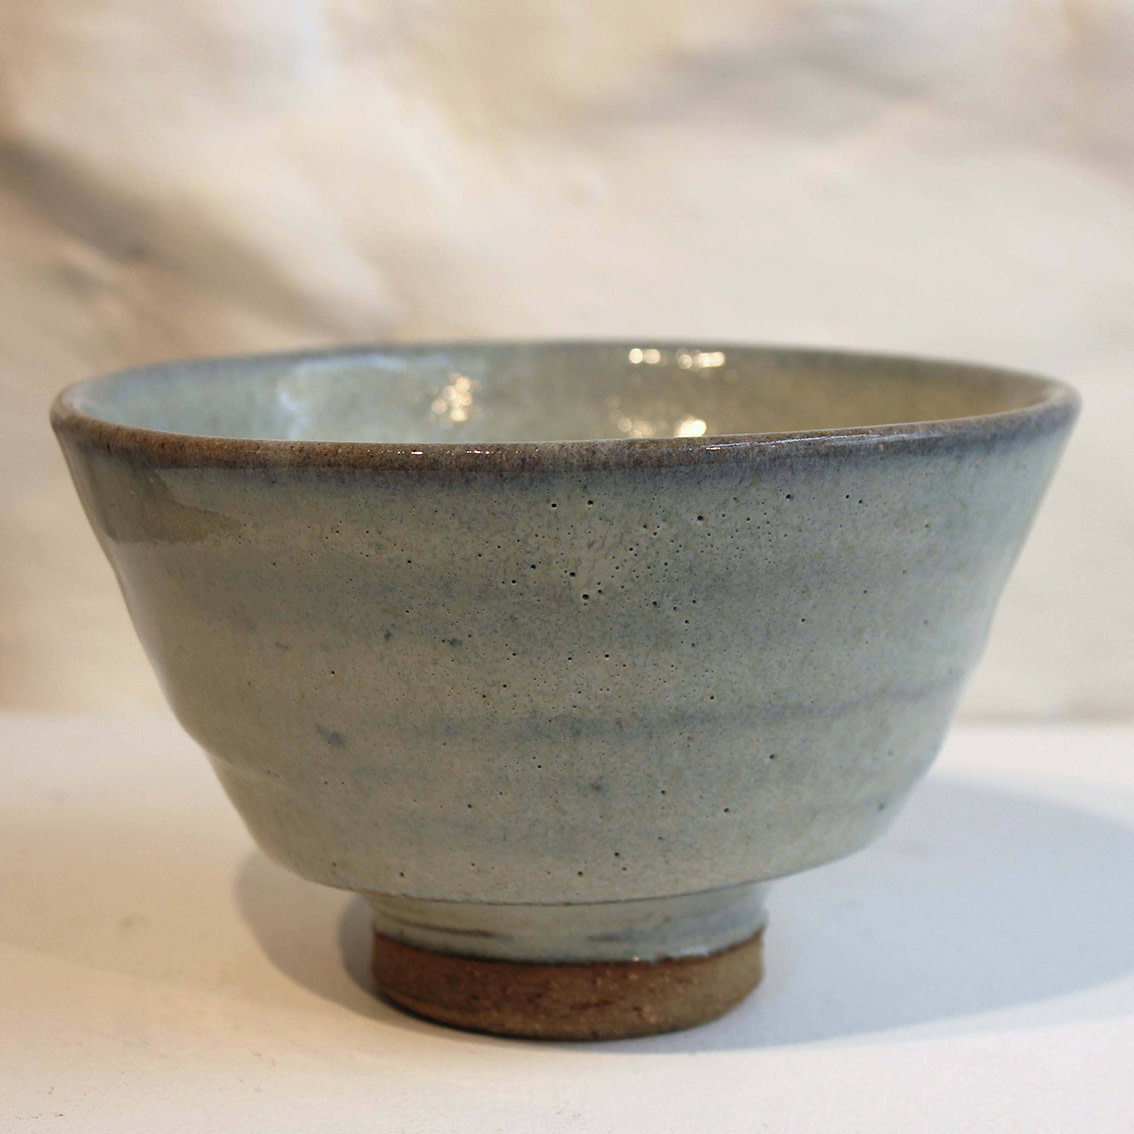 "<span class=""link fancybox-details-link""><a href=""/artists/200-matthew-tyas/works/5457-matthew-tyas-nuka-chawan-bowl-2018/"">View Detail Page</a></span><div class=""artist""><strong>Matthew Tyas</strong></div> <div class=""title""><em>Nuka Chawan Bowl</em>, 2018</div> <div class=""signed_and_dated"">stamped by the artist</div> <div class=""medium"">glazed thrown stoneware</div><div class=""price"">£75.00</div><div class=""copyright_line"">Copyright The Artist</div>"